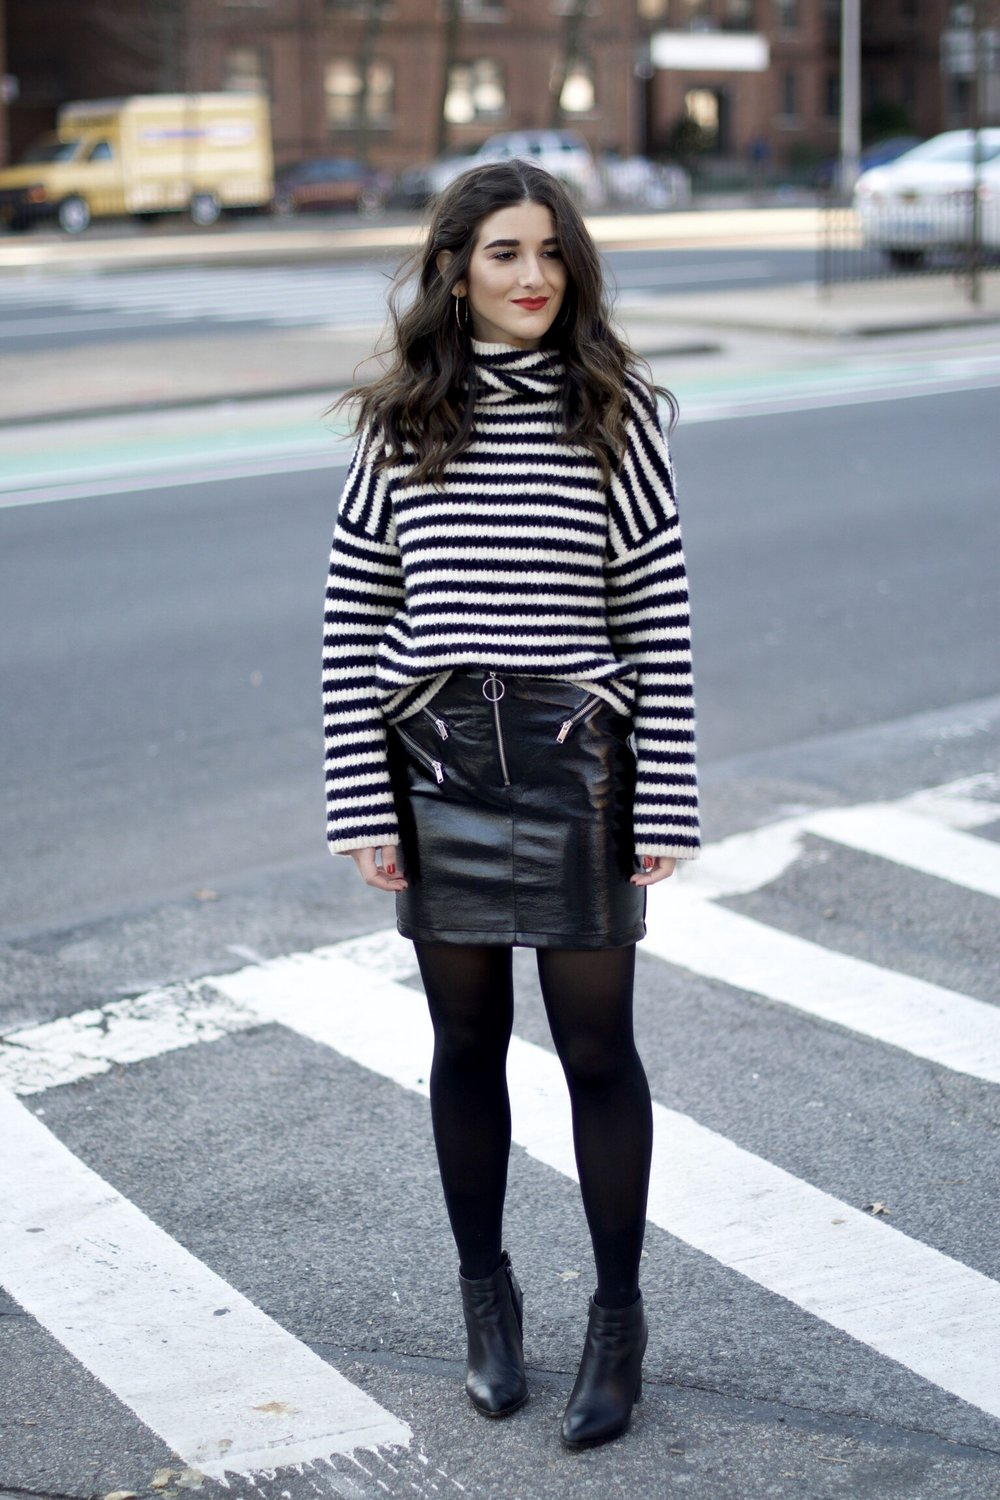 Striped Turtleneck Sweater + Pleather Skirt The Right Way To Ask Someone To Meet For Coffee Esther Santer Fashion Blog NYC Street Style Blogger Outfit OOTD Trendy Girl Women Black White Tights Ankle Booties Winter Hoops Earrings Wavy Hair Shop  Shoes.jpg